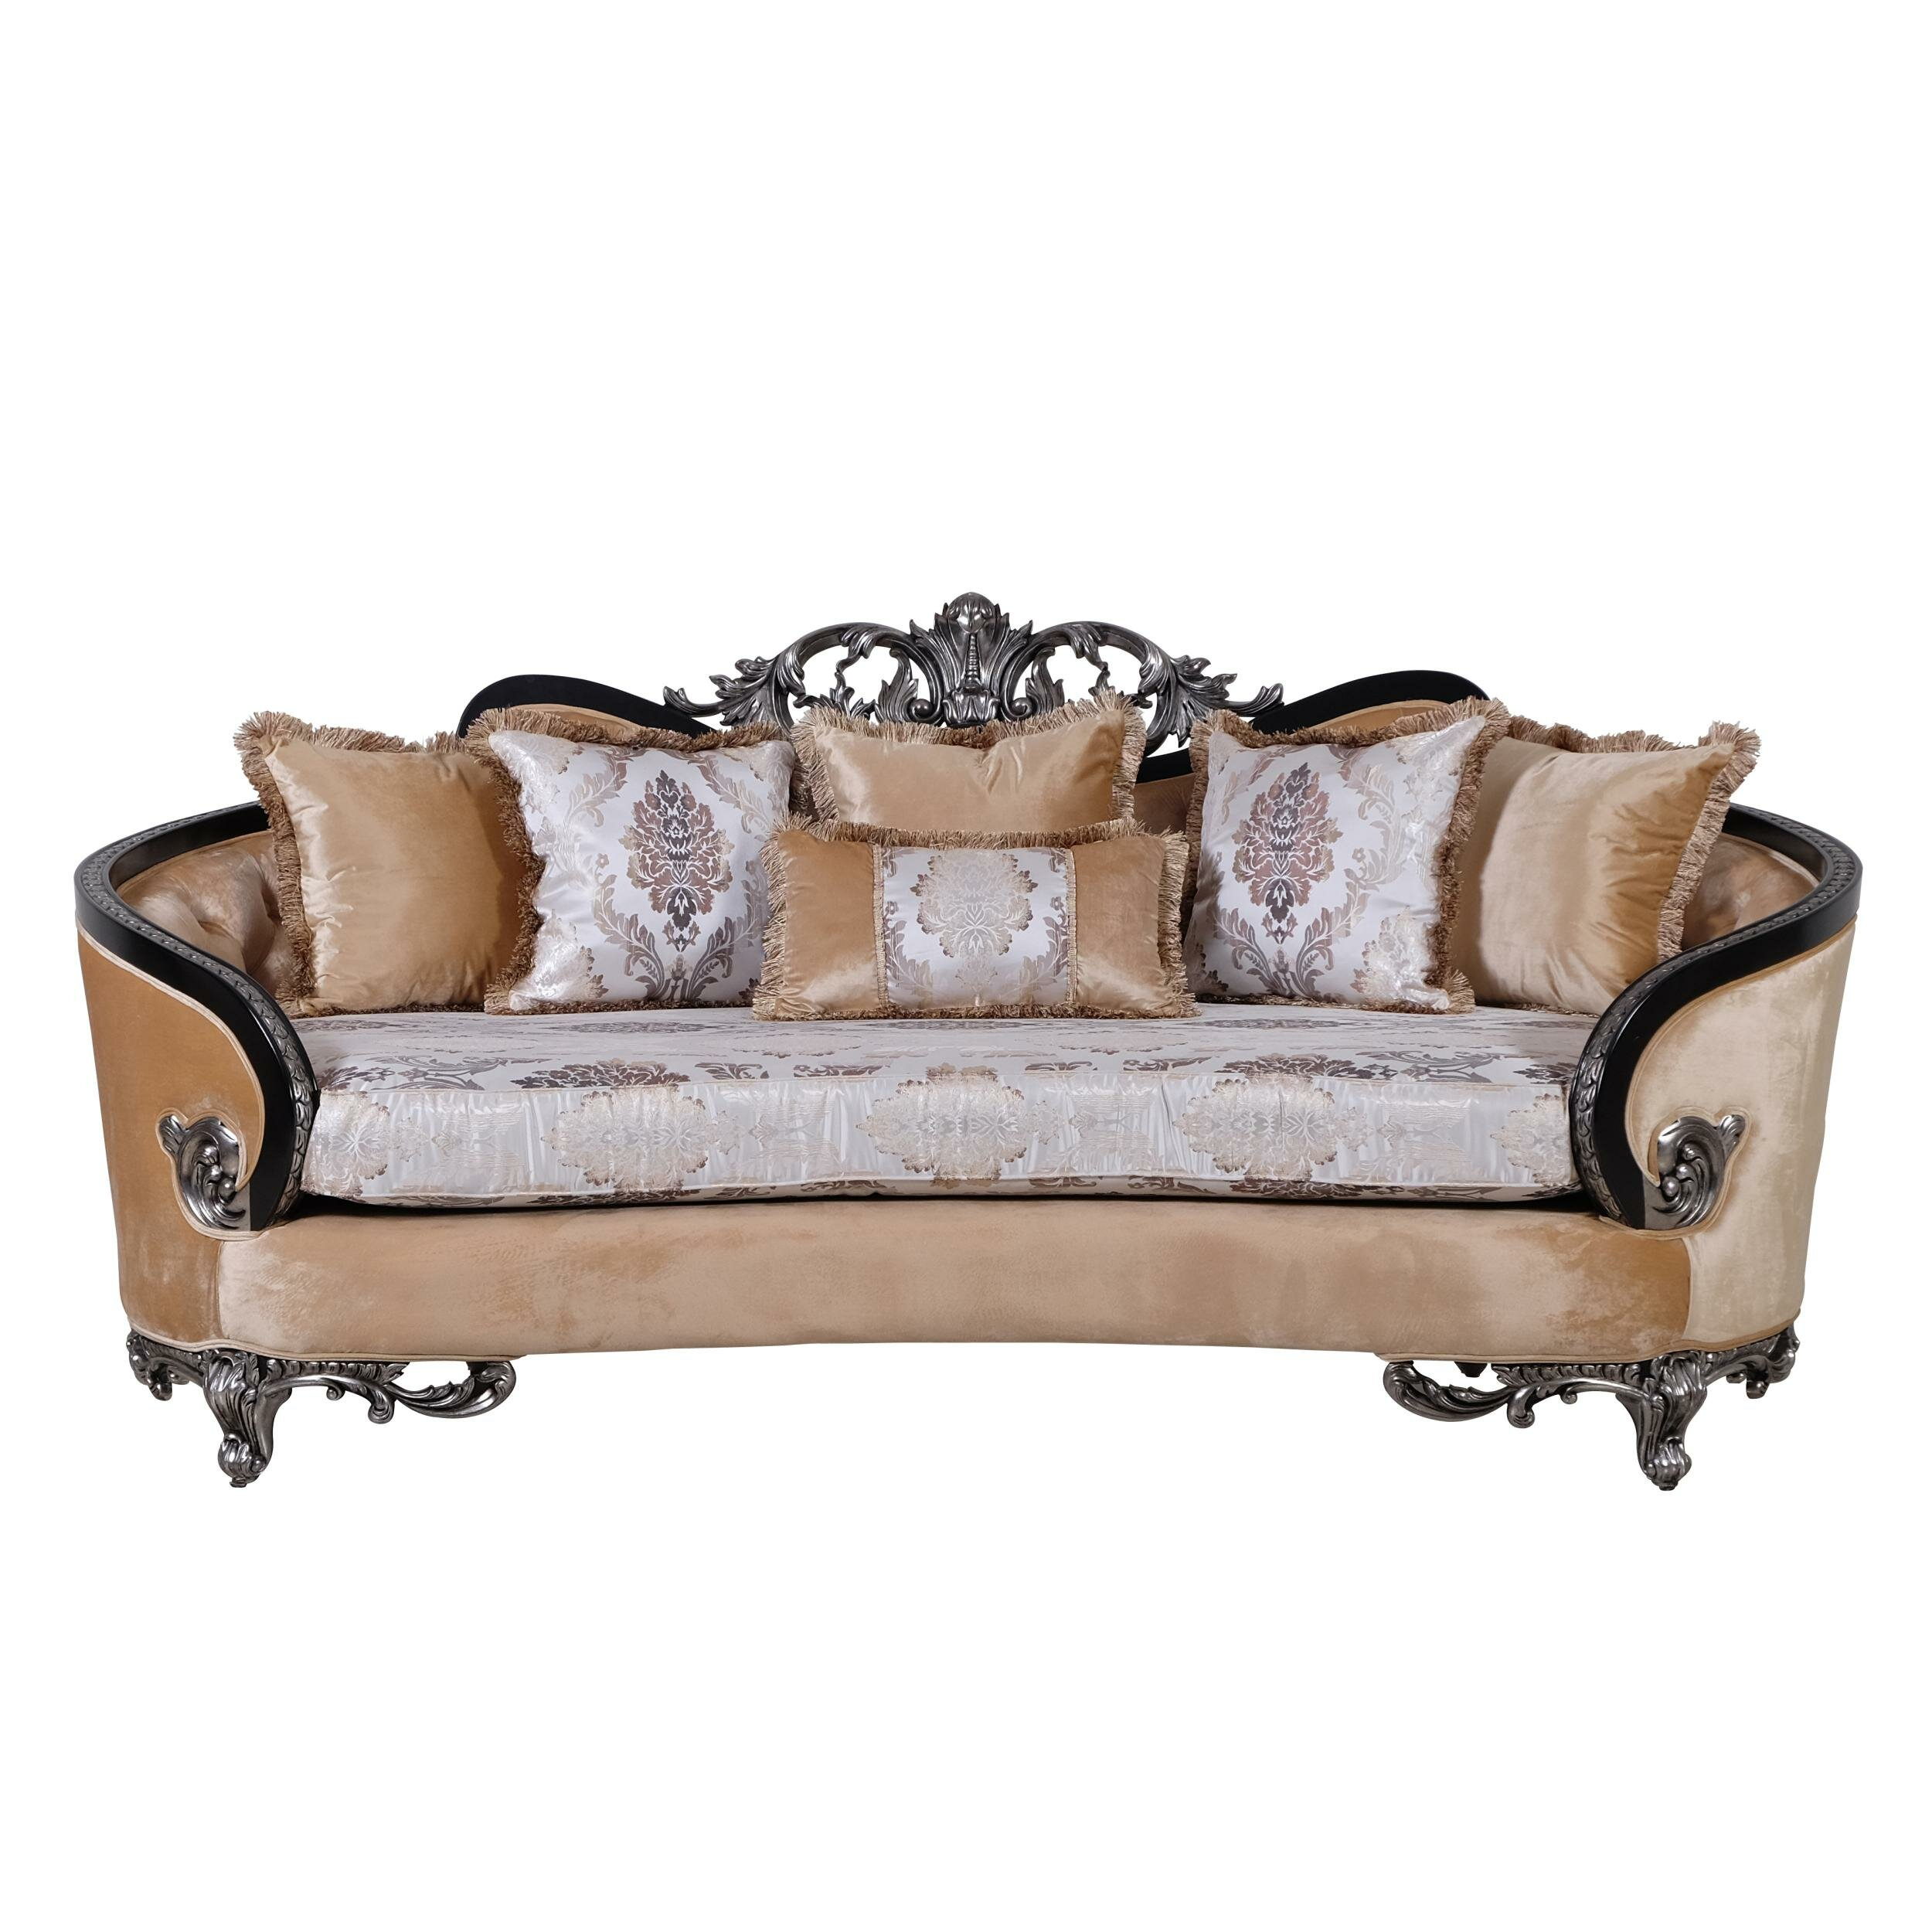 Benjara Classic Wooden Curved Sofa With Intricate Engravings Beige And Black Wayfair